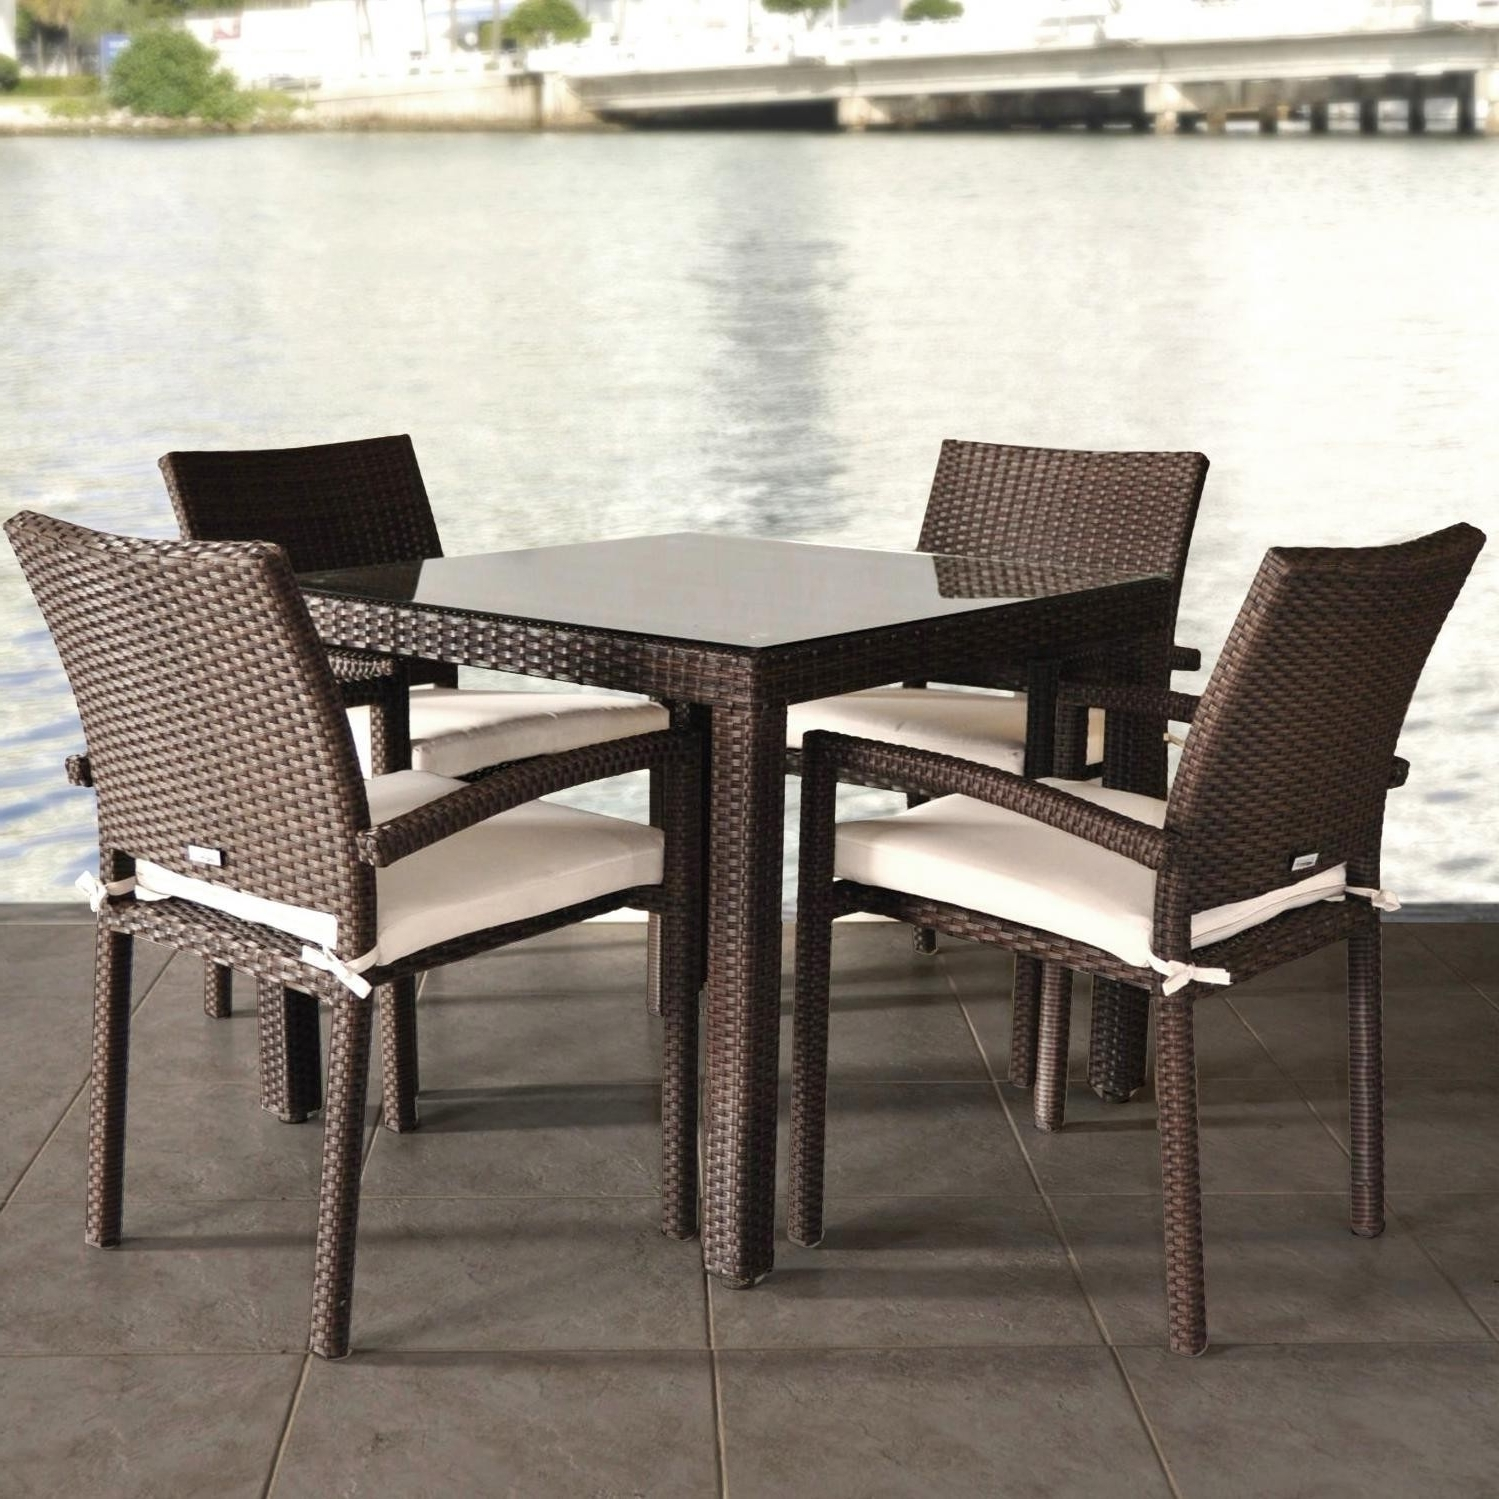 Wicker And Glass Dining Tables Pertaining To Widely Used Round Glass Dining Table Sets For 4 Best Of Atlantic Liberty  (View 22 of 25)